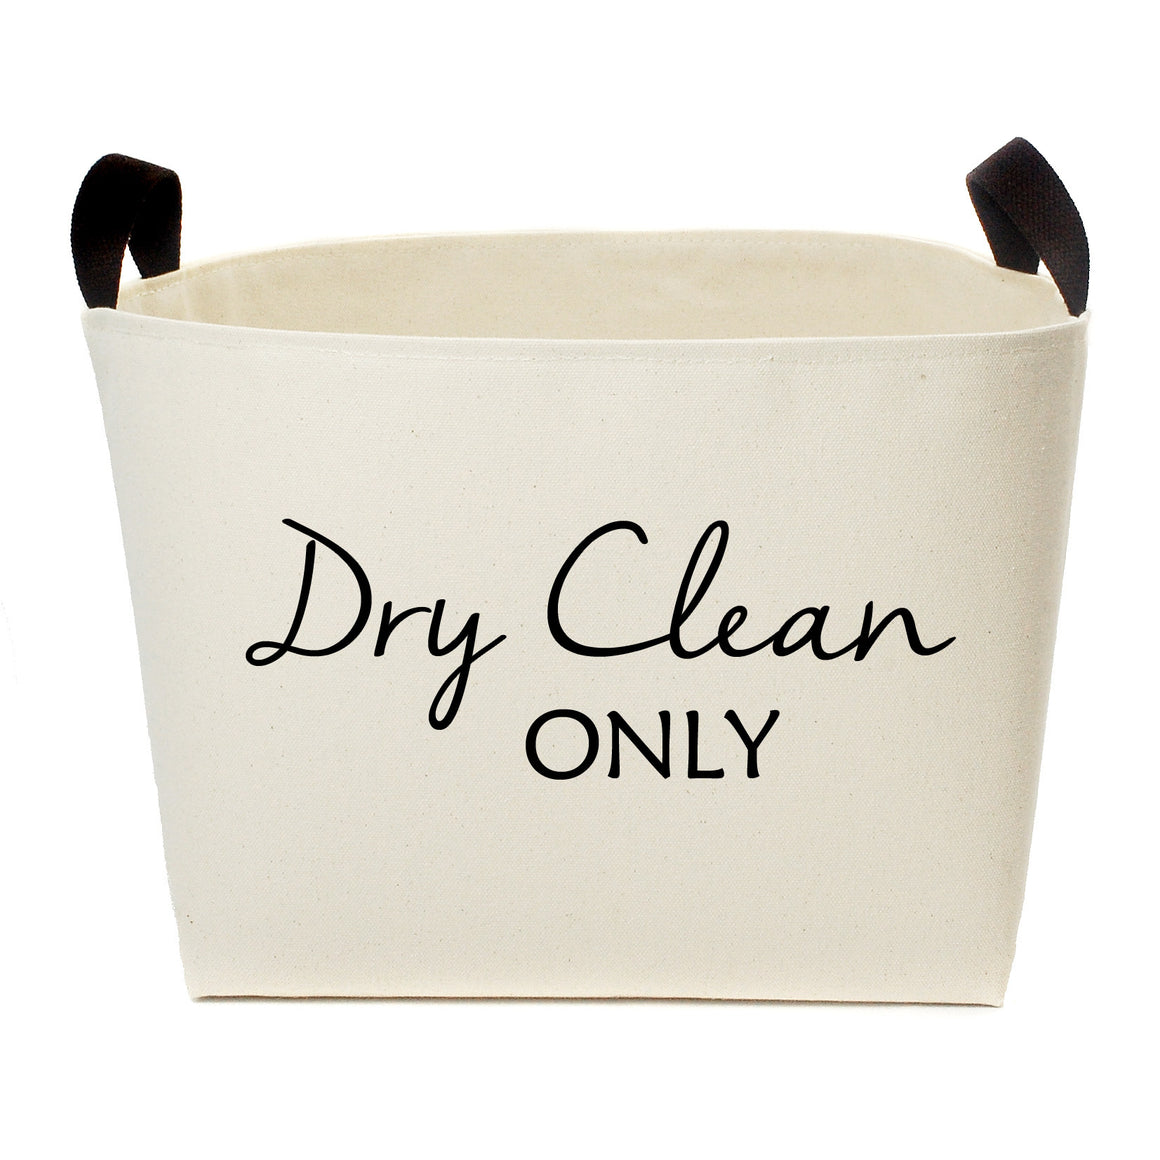 Dry Clean Only Luxury Canvas Laundry Basket - A Southern Bucket